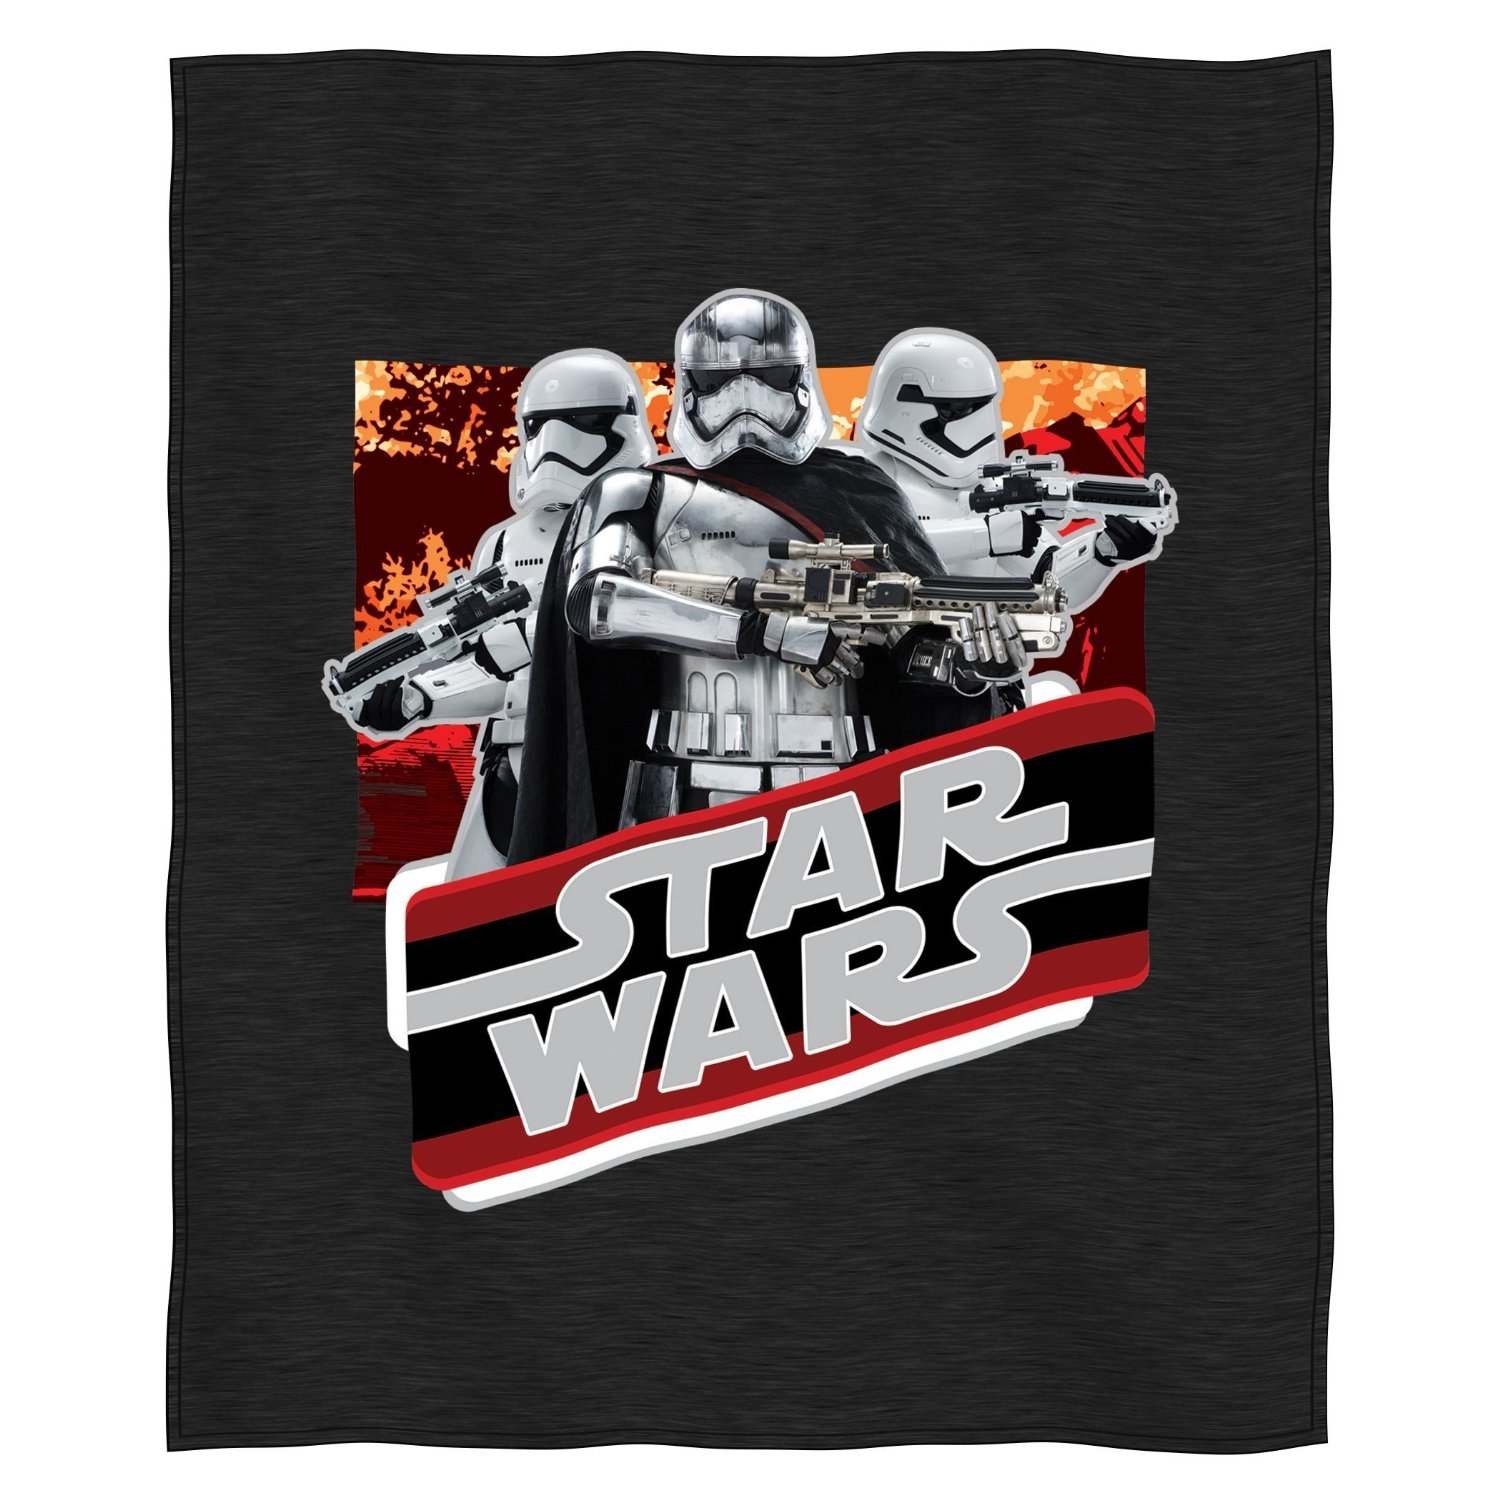 """Lucas Films Star Wars Episode 7: The Force Awakens, """"Fire Raid"""" Sweatshirt Throw by The Northwest Company, 50"""" by 60"""""""